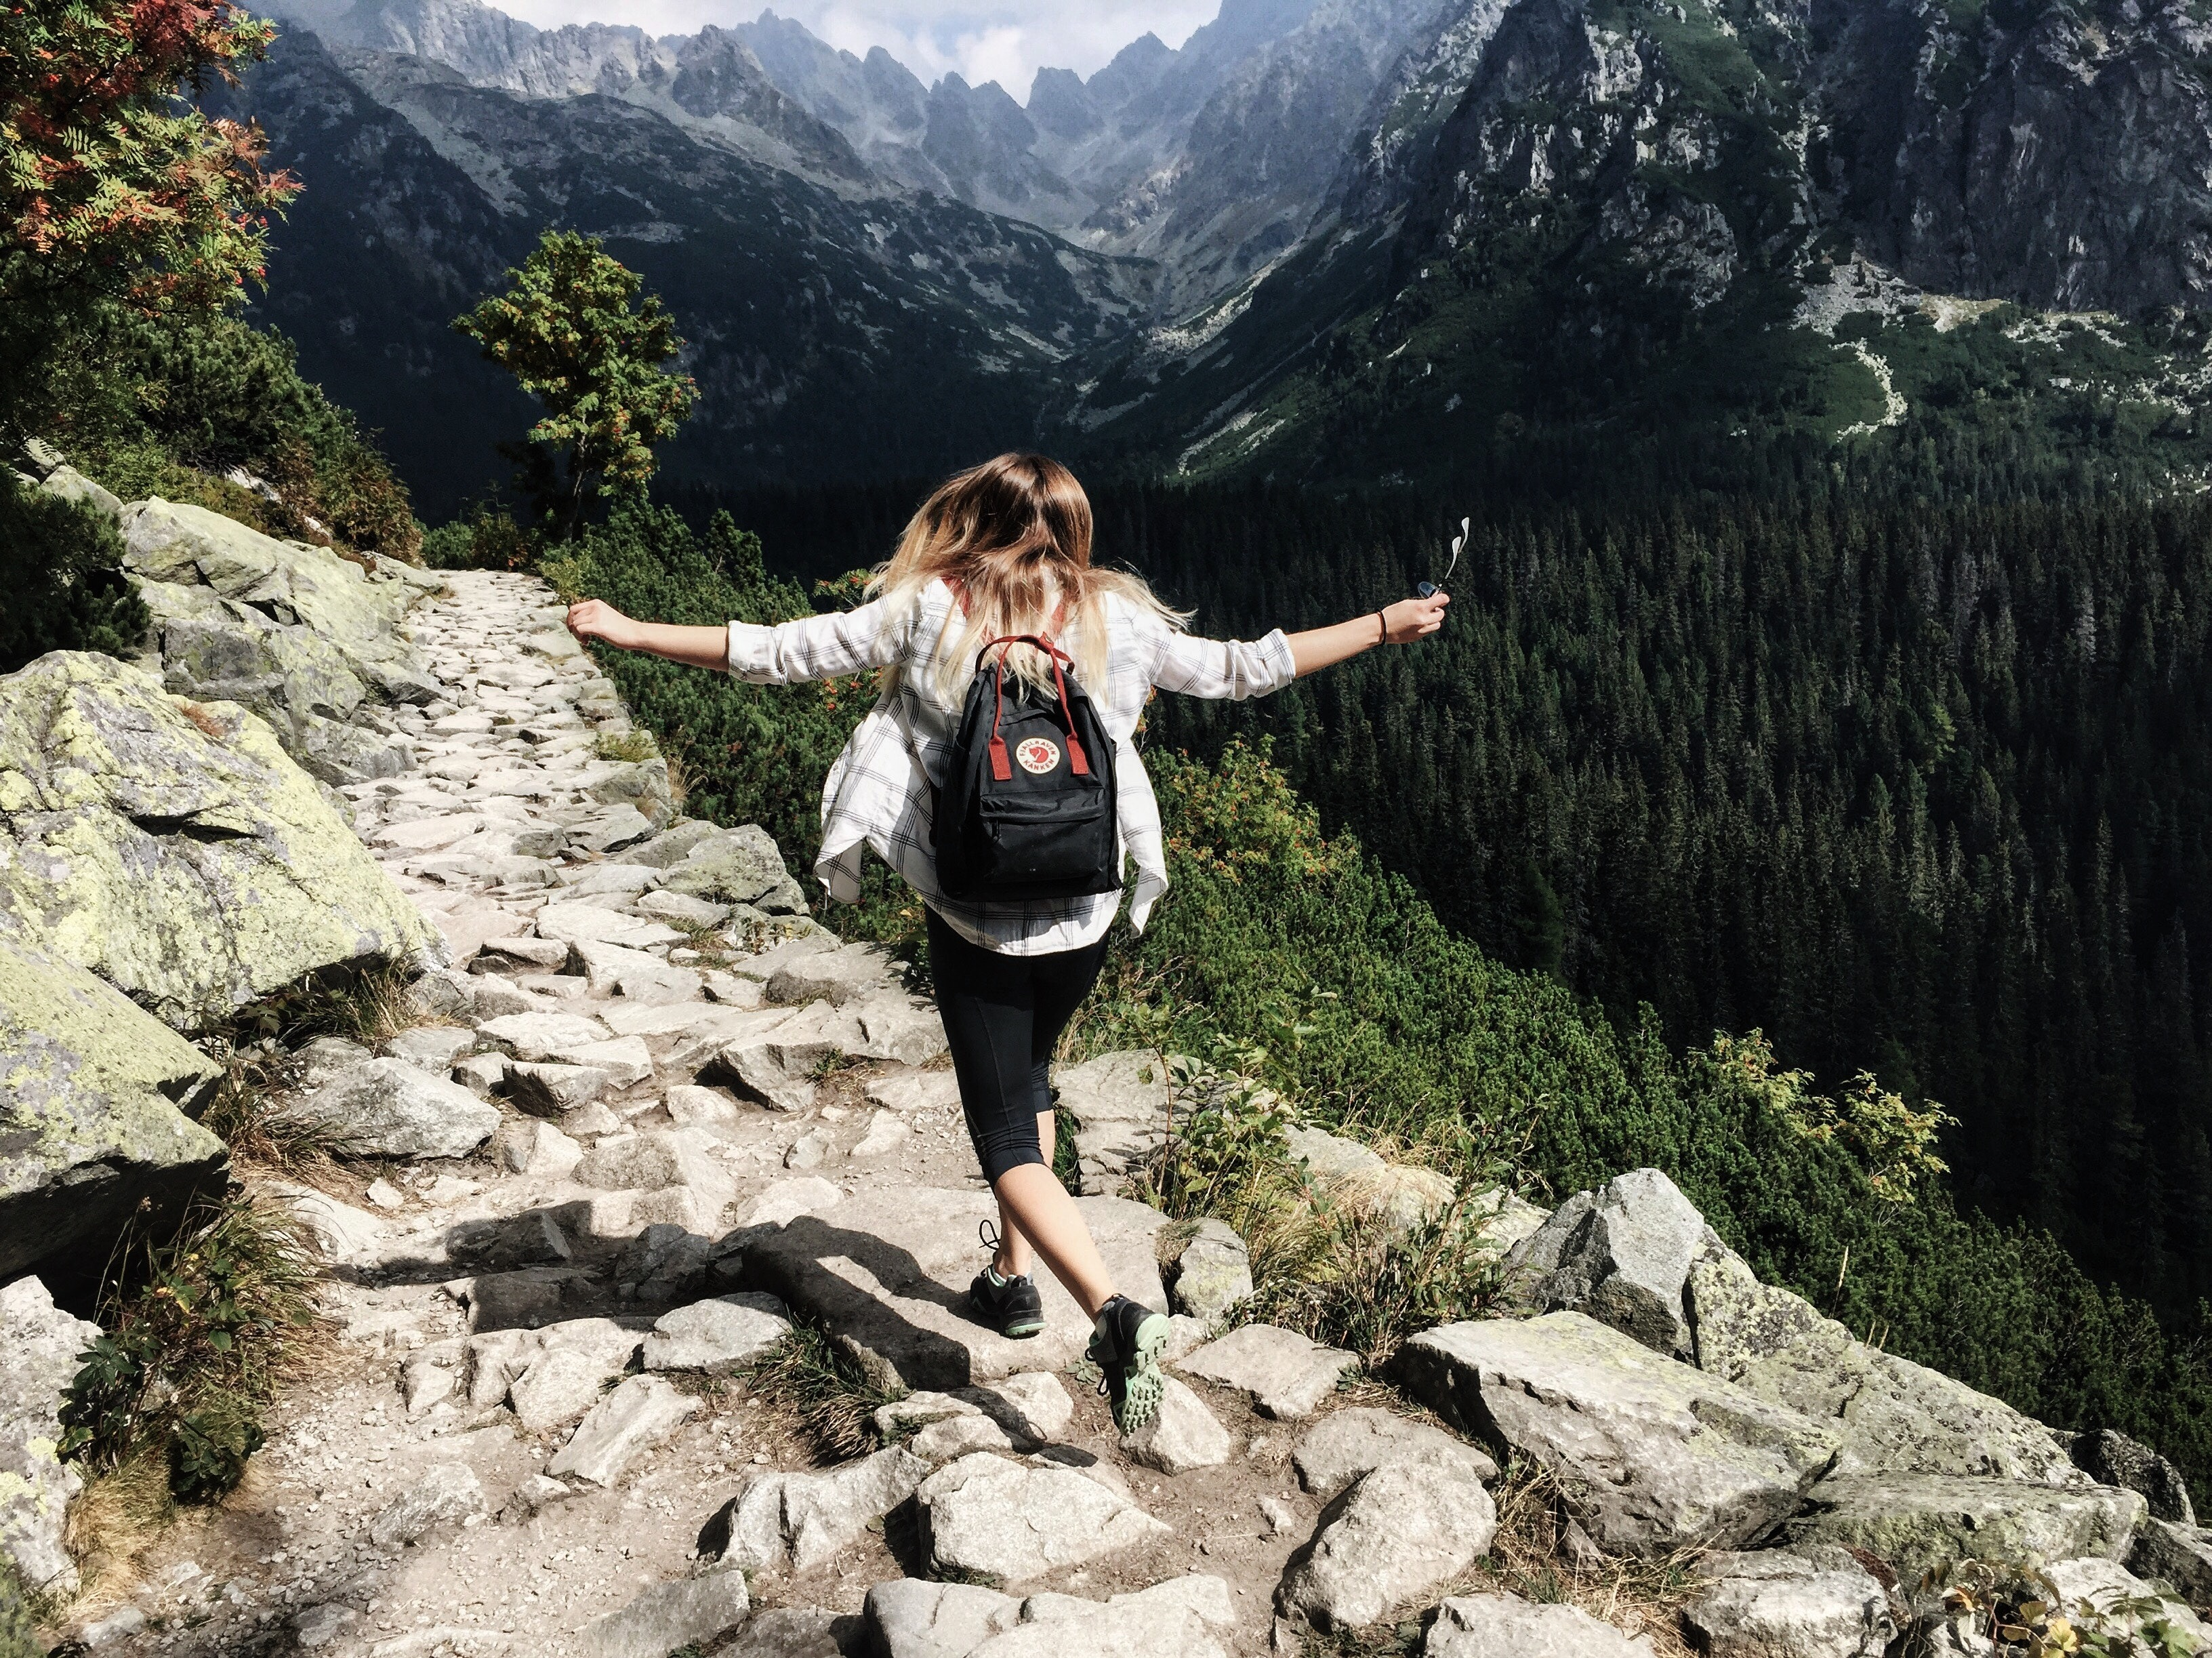 Hit the Trail – Hiking is Great for Fitness and Relaxation